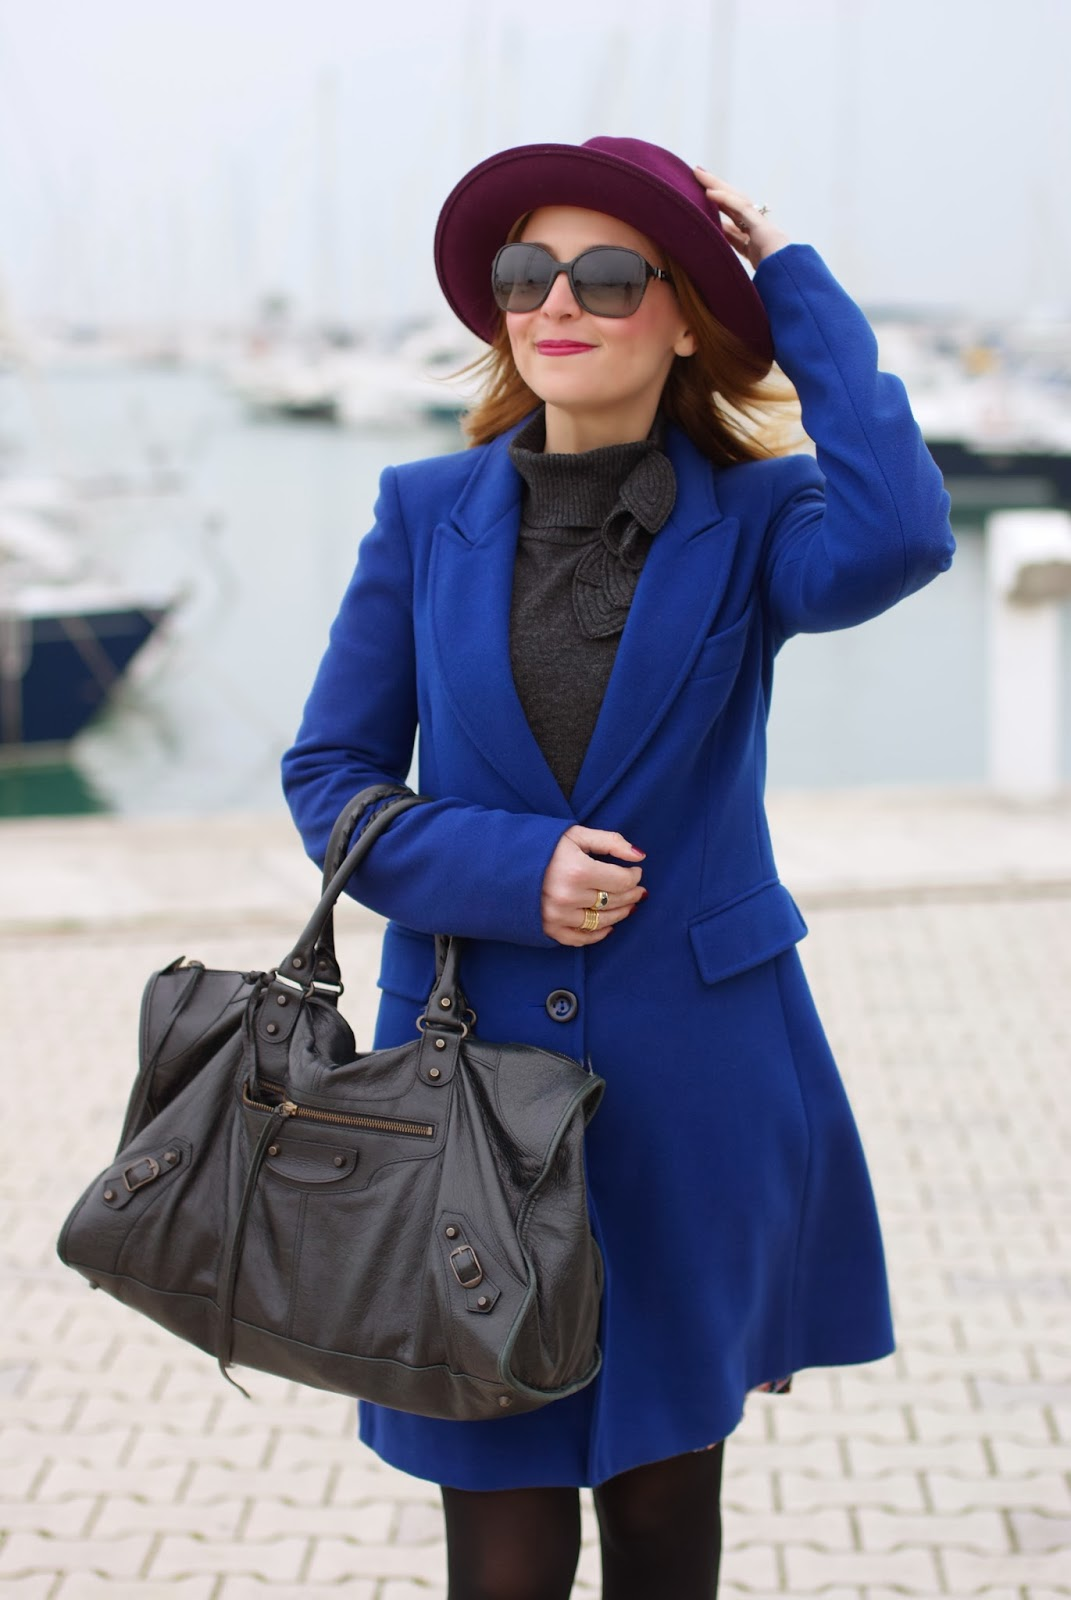 Paola Frani cappotto, Ecua-Andino hat, cobalt blue coat, Balenciaga work bag, Fashion and Cookies, fashion blogger